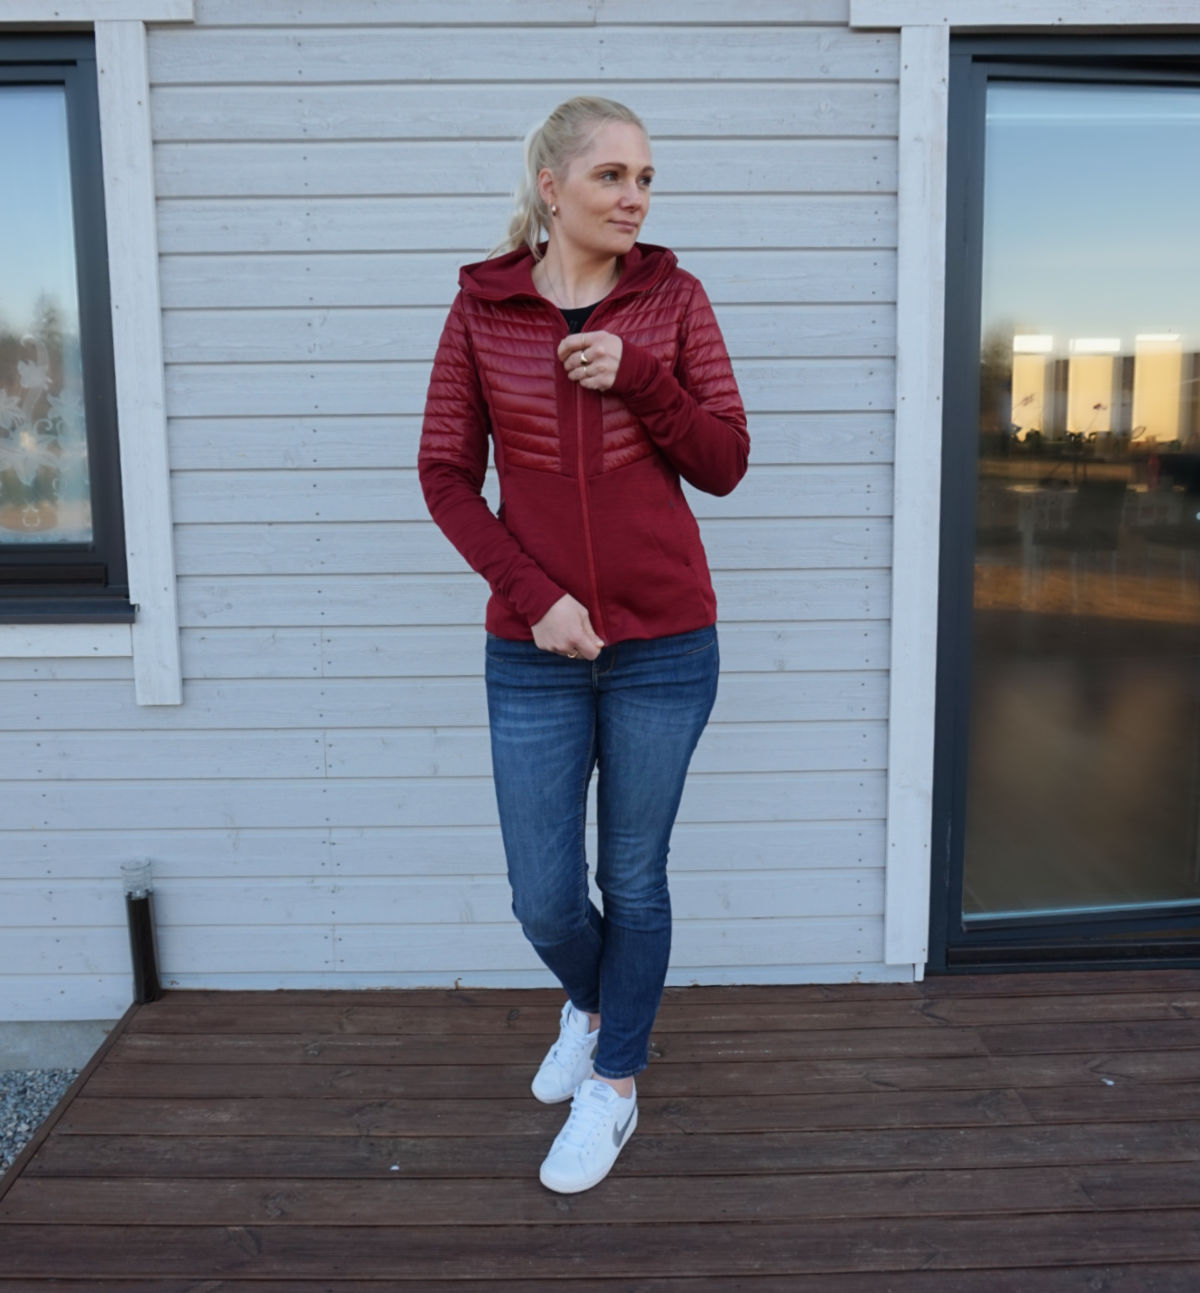 Simple outfit for spring/autumn for a day outside: red hybrid jacket, blue jeans, white sneakers